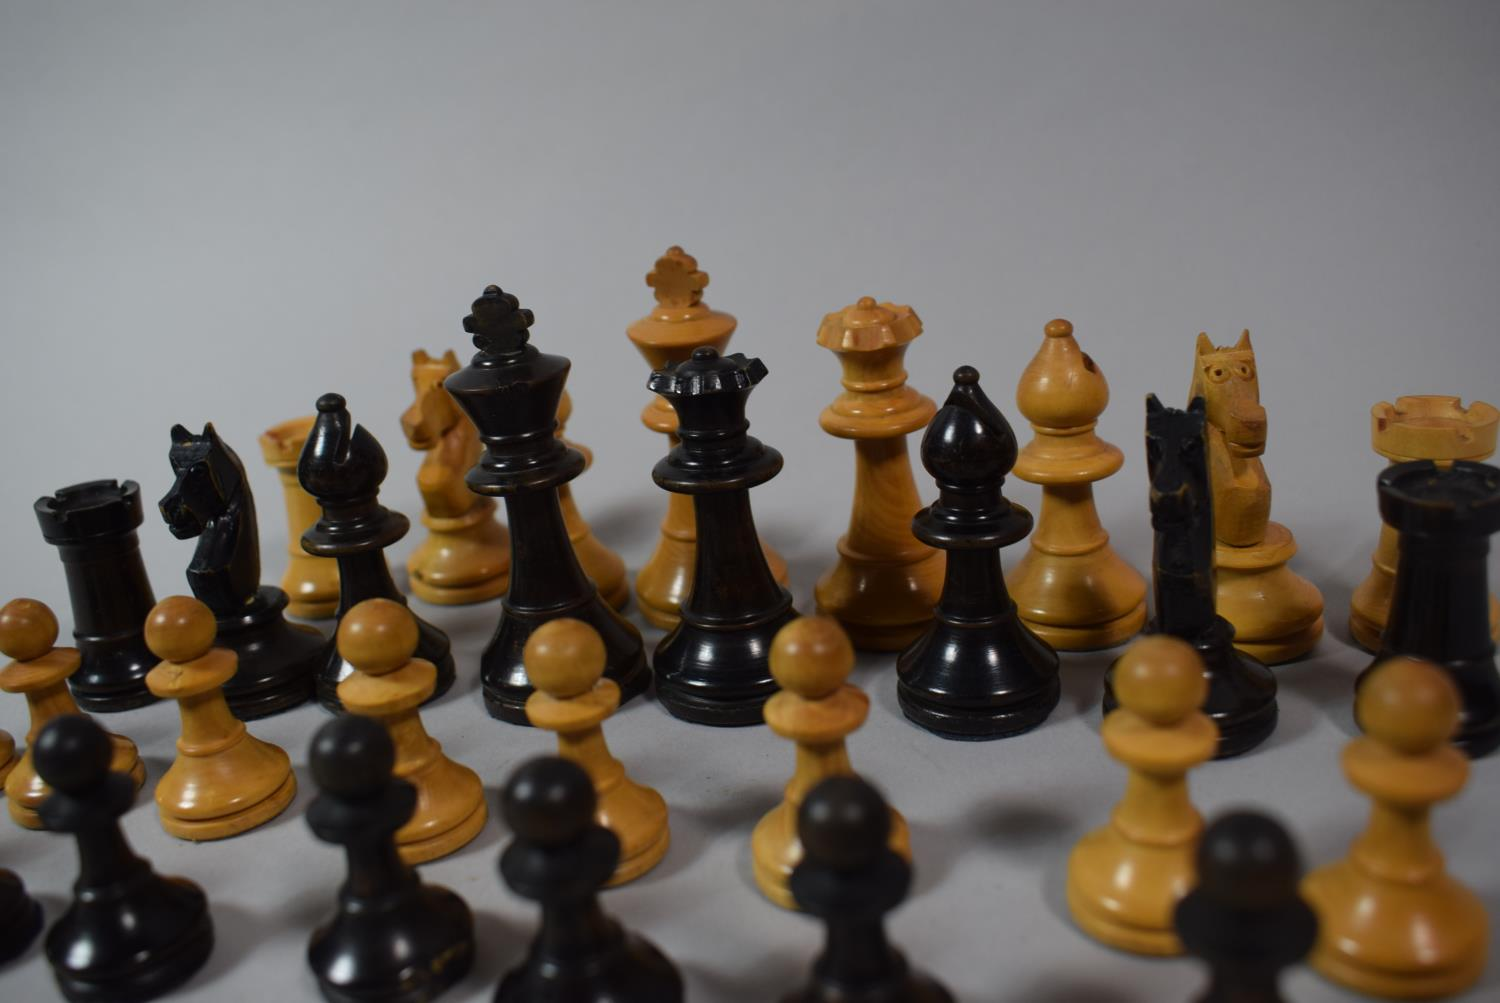 Lot 52 - A Full Set of Small Turned Wooden 'Staunton Style' Chess Pieces, King 7cm High